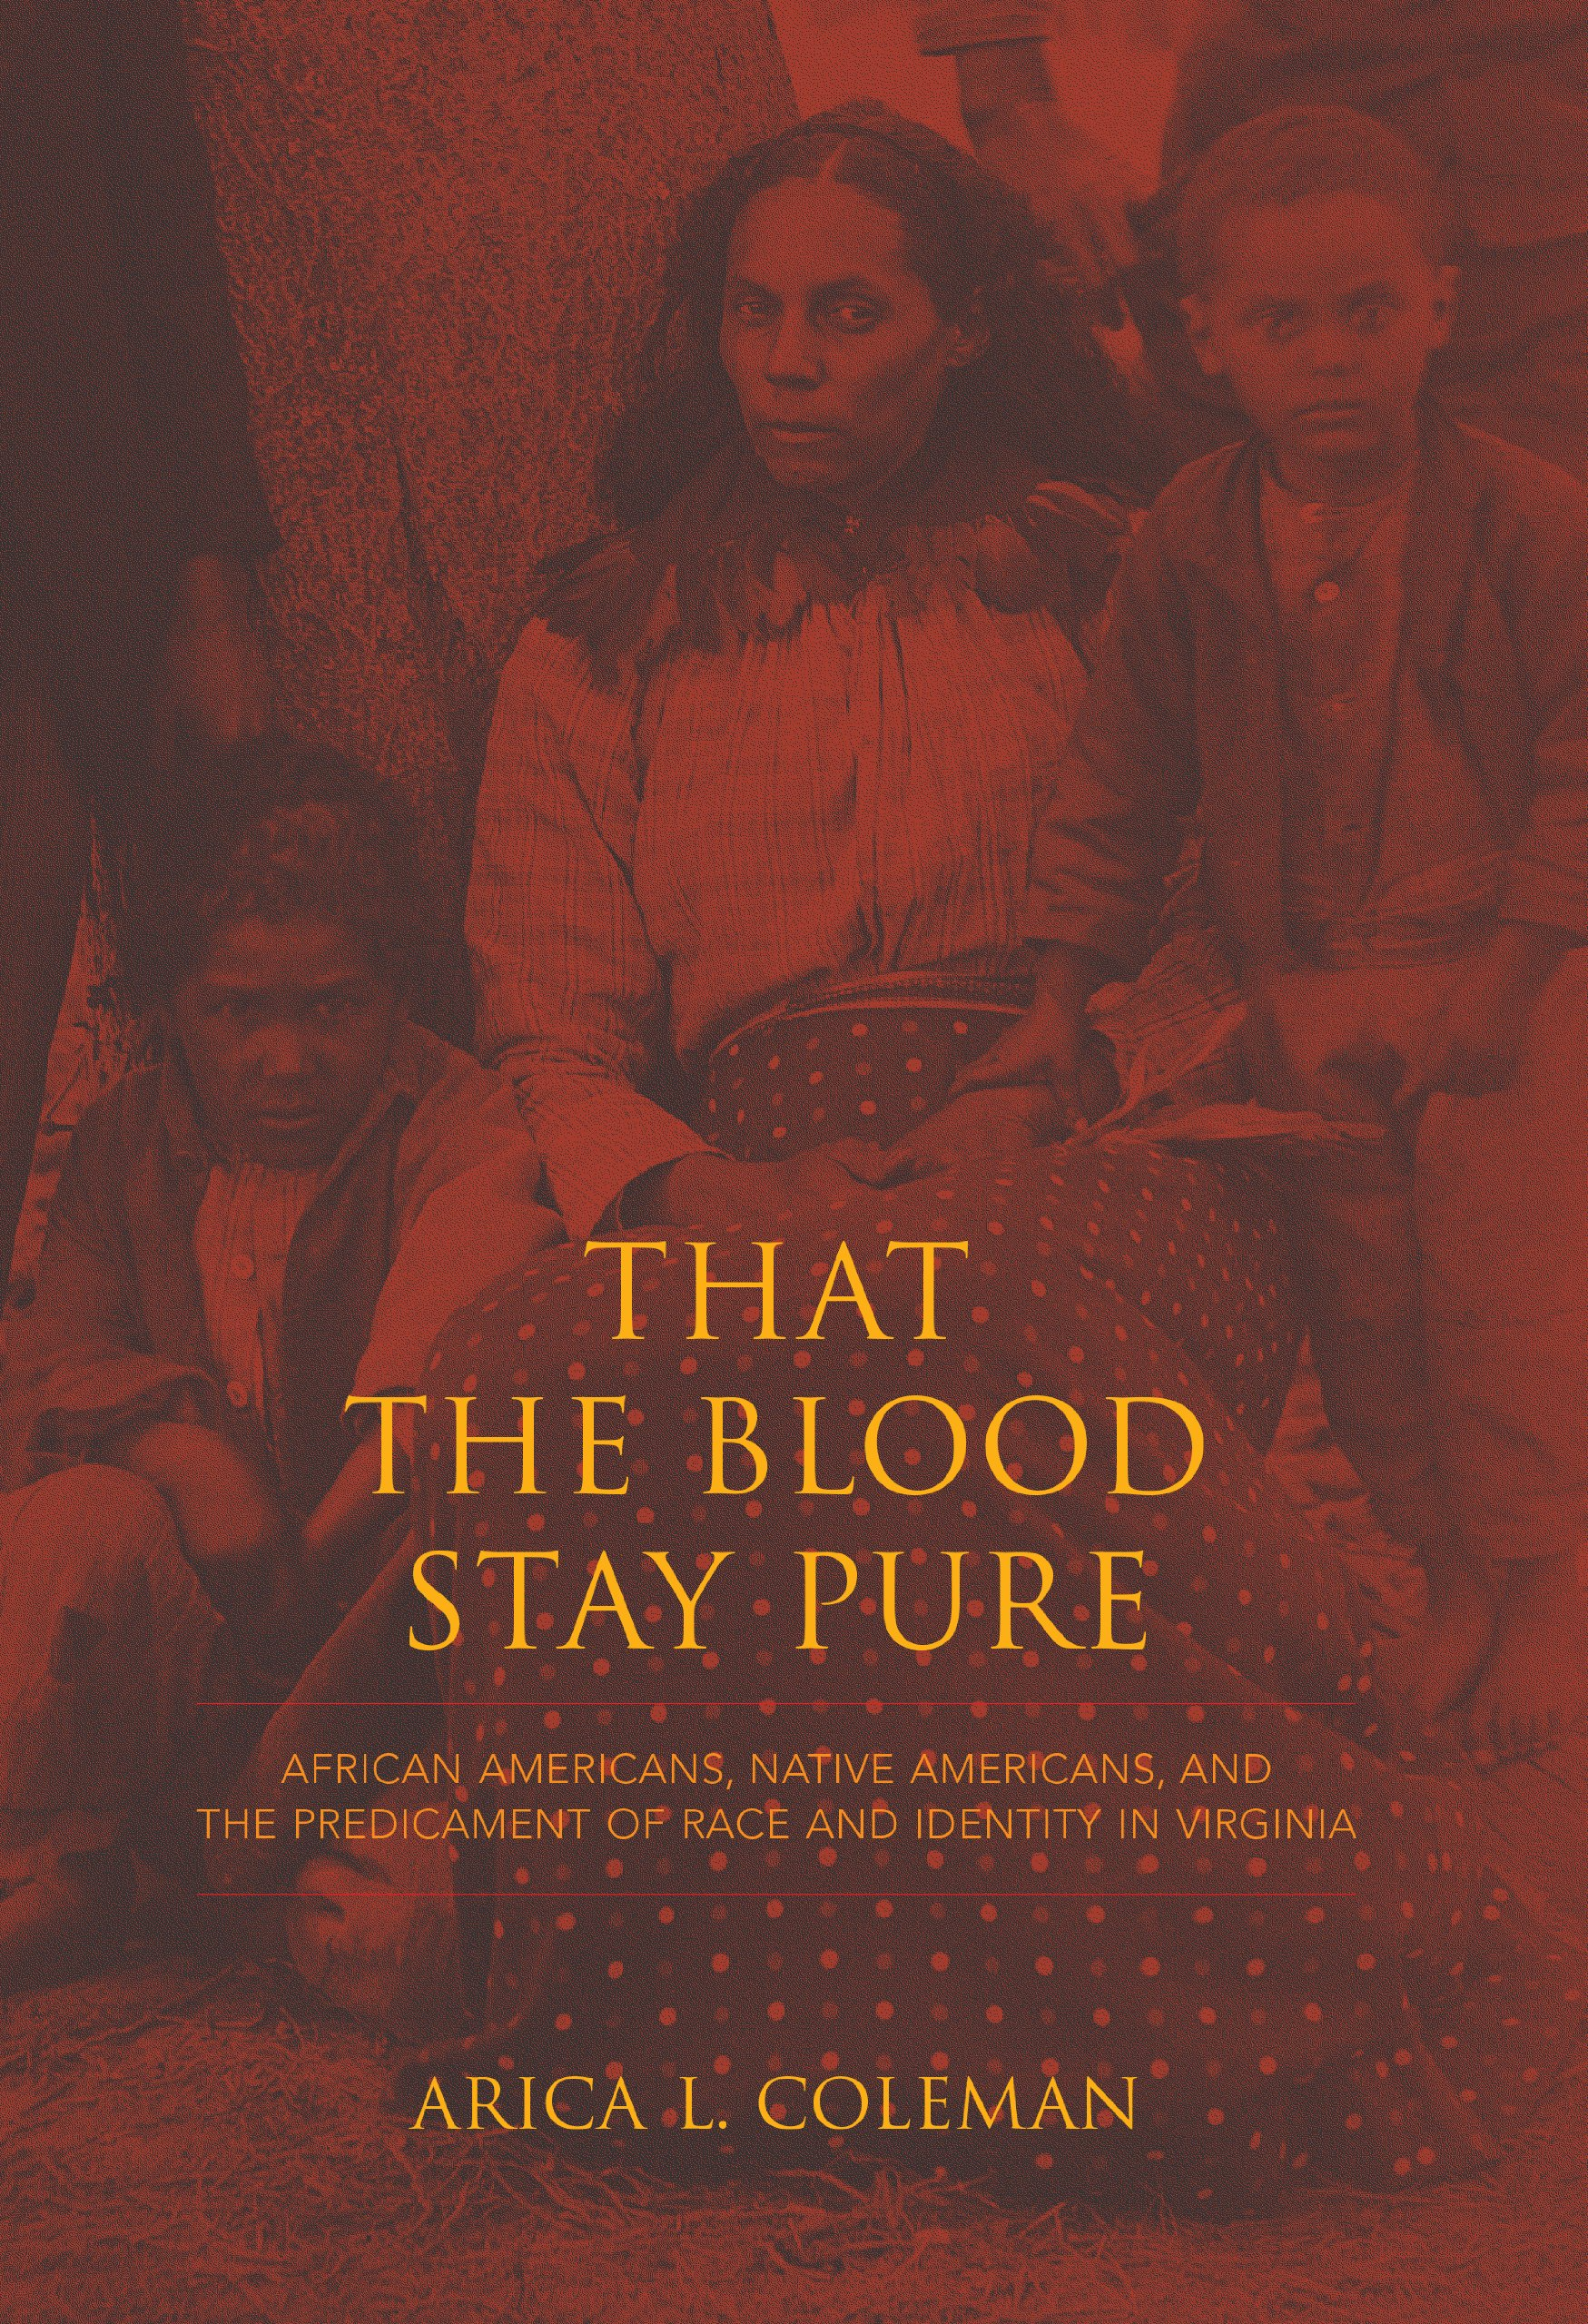 That the Blood Stay Pure: African Americans, Native Americans, and the Predicament of Race and Identity in Virginia (Blacks in the Diaspora) pdf